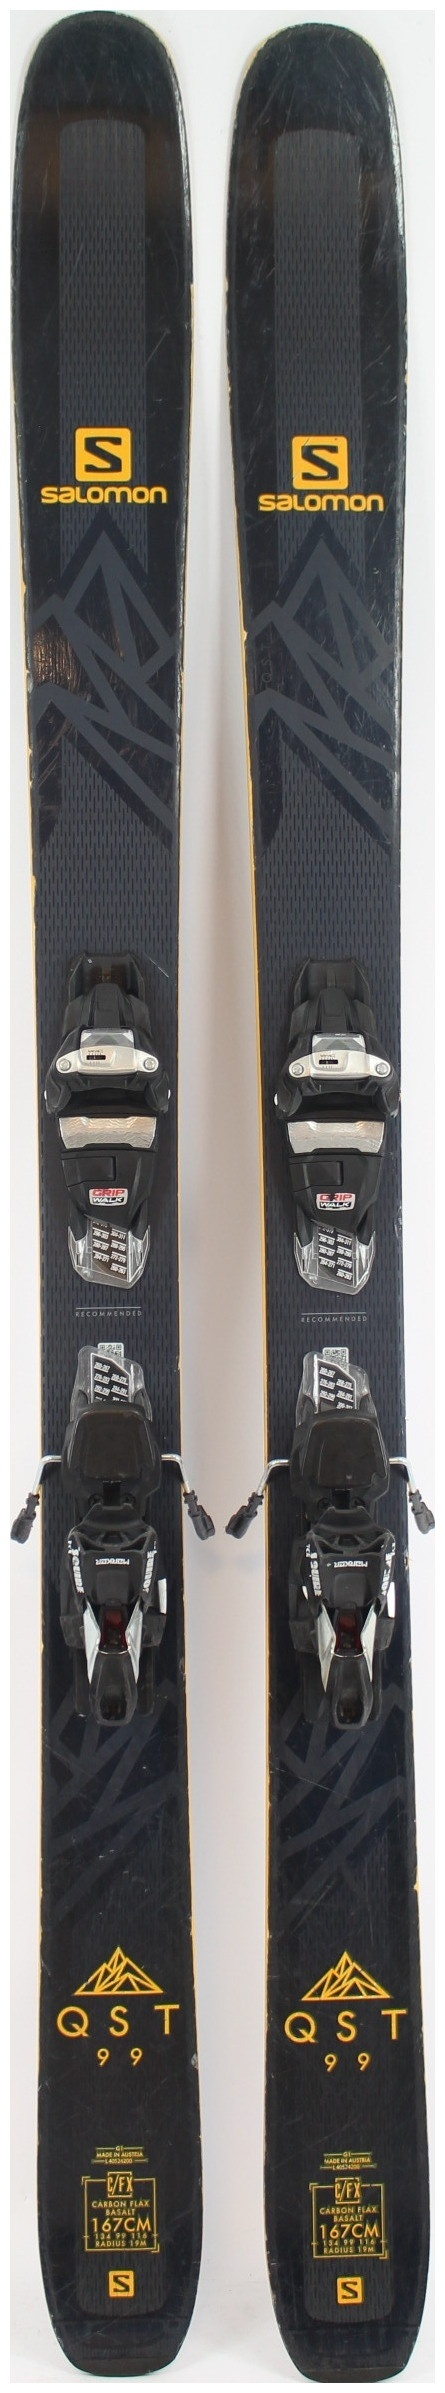 2019, Salomon, QST 99 Skis with Marker Squire TCX Demo Bindings Used Demo  Skis 167cm